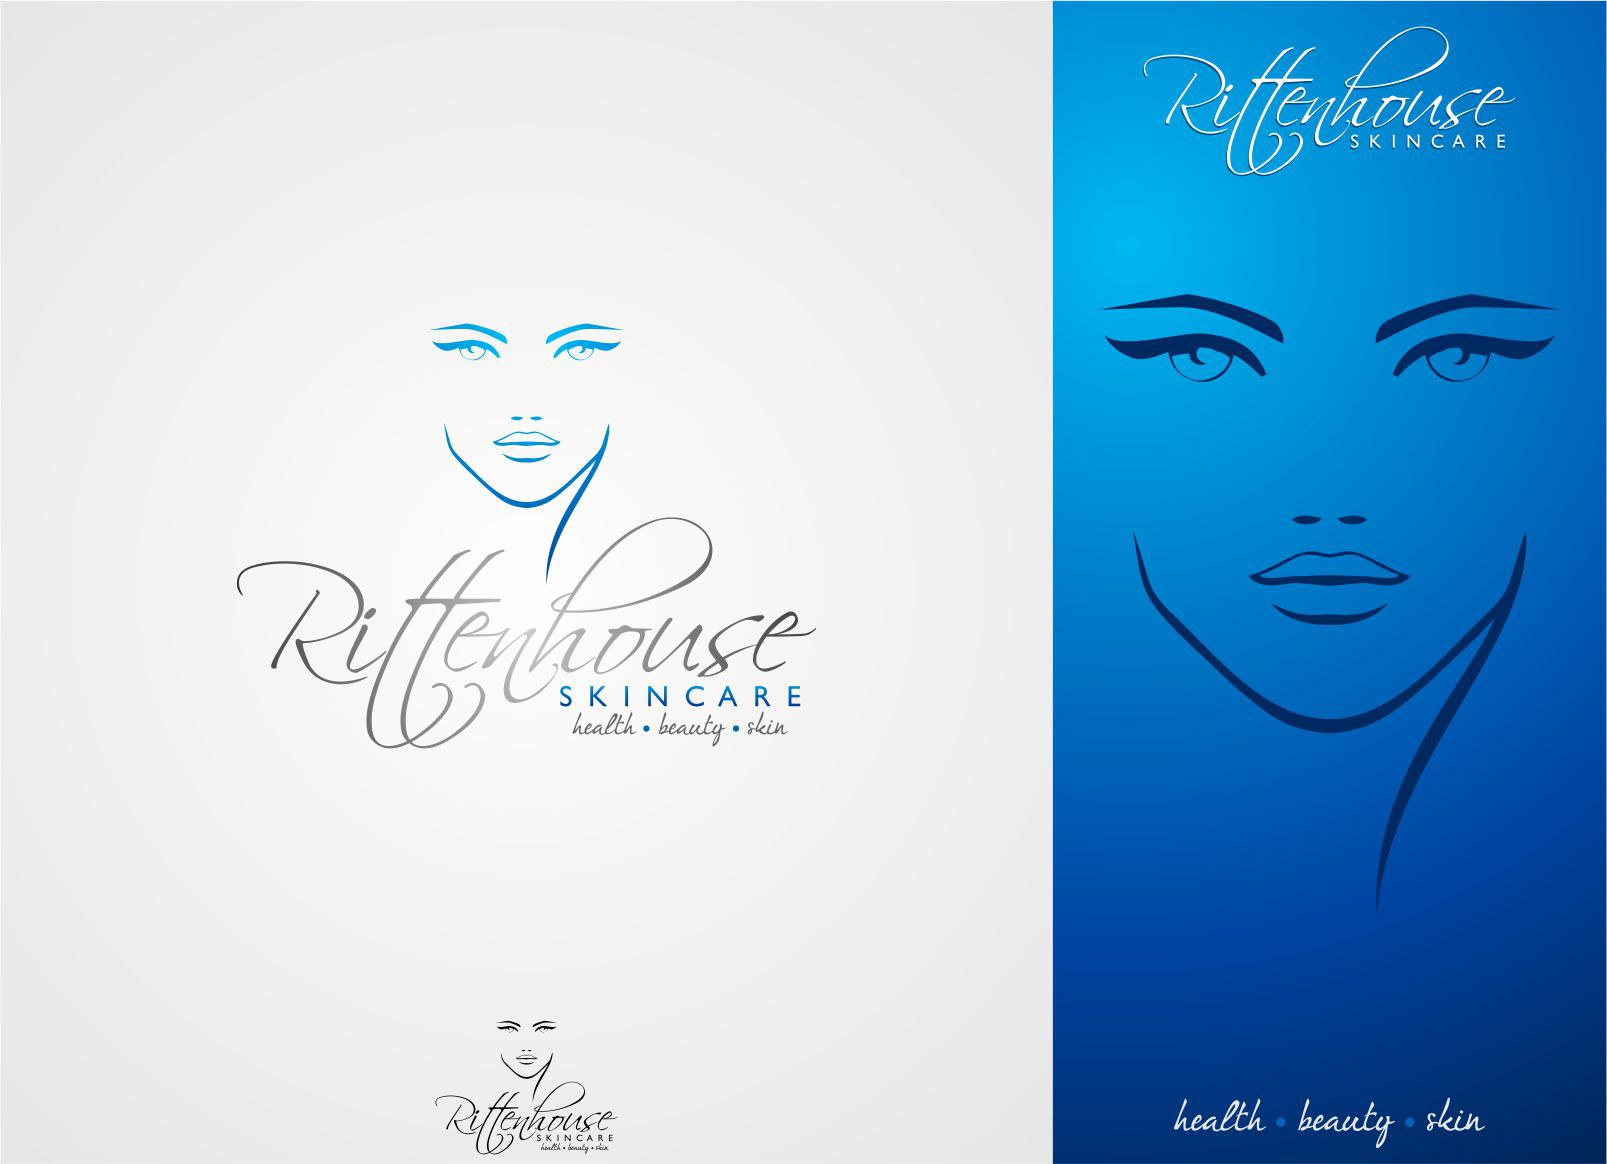 Rittenhouse Skincare needs a new logo